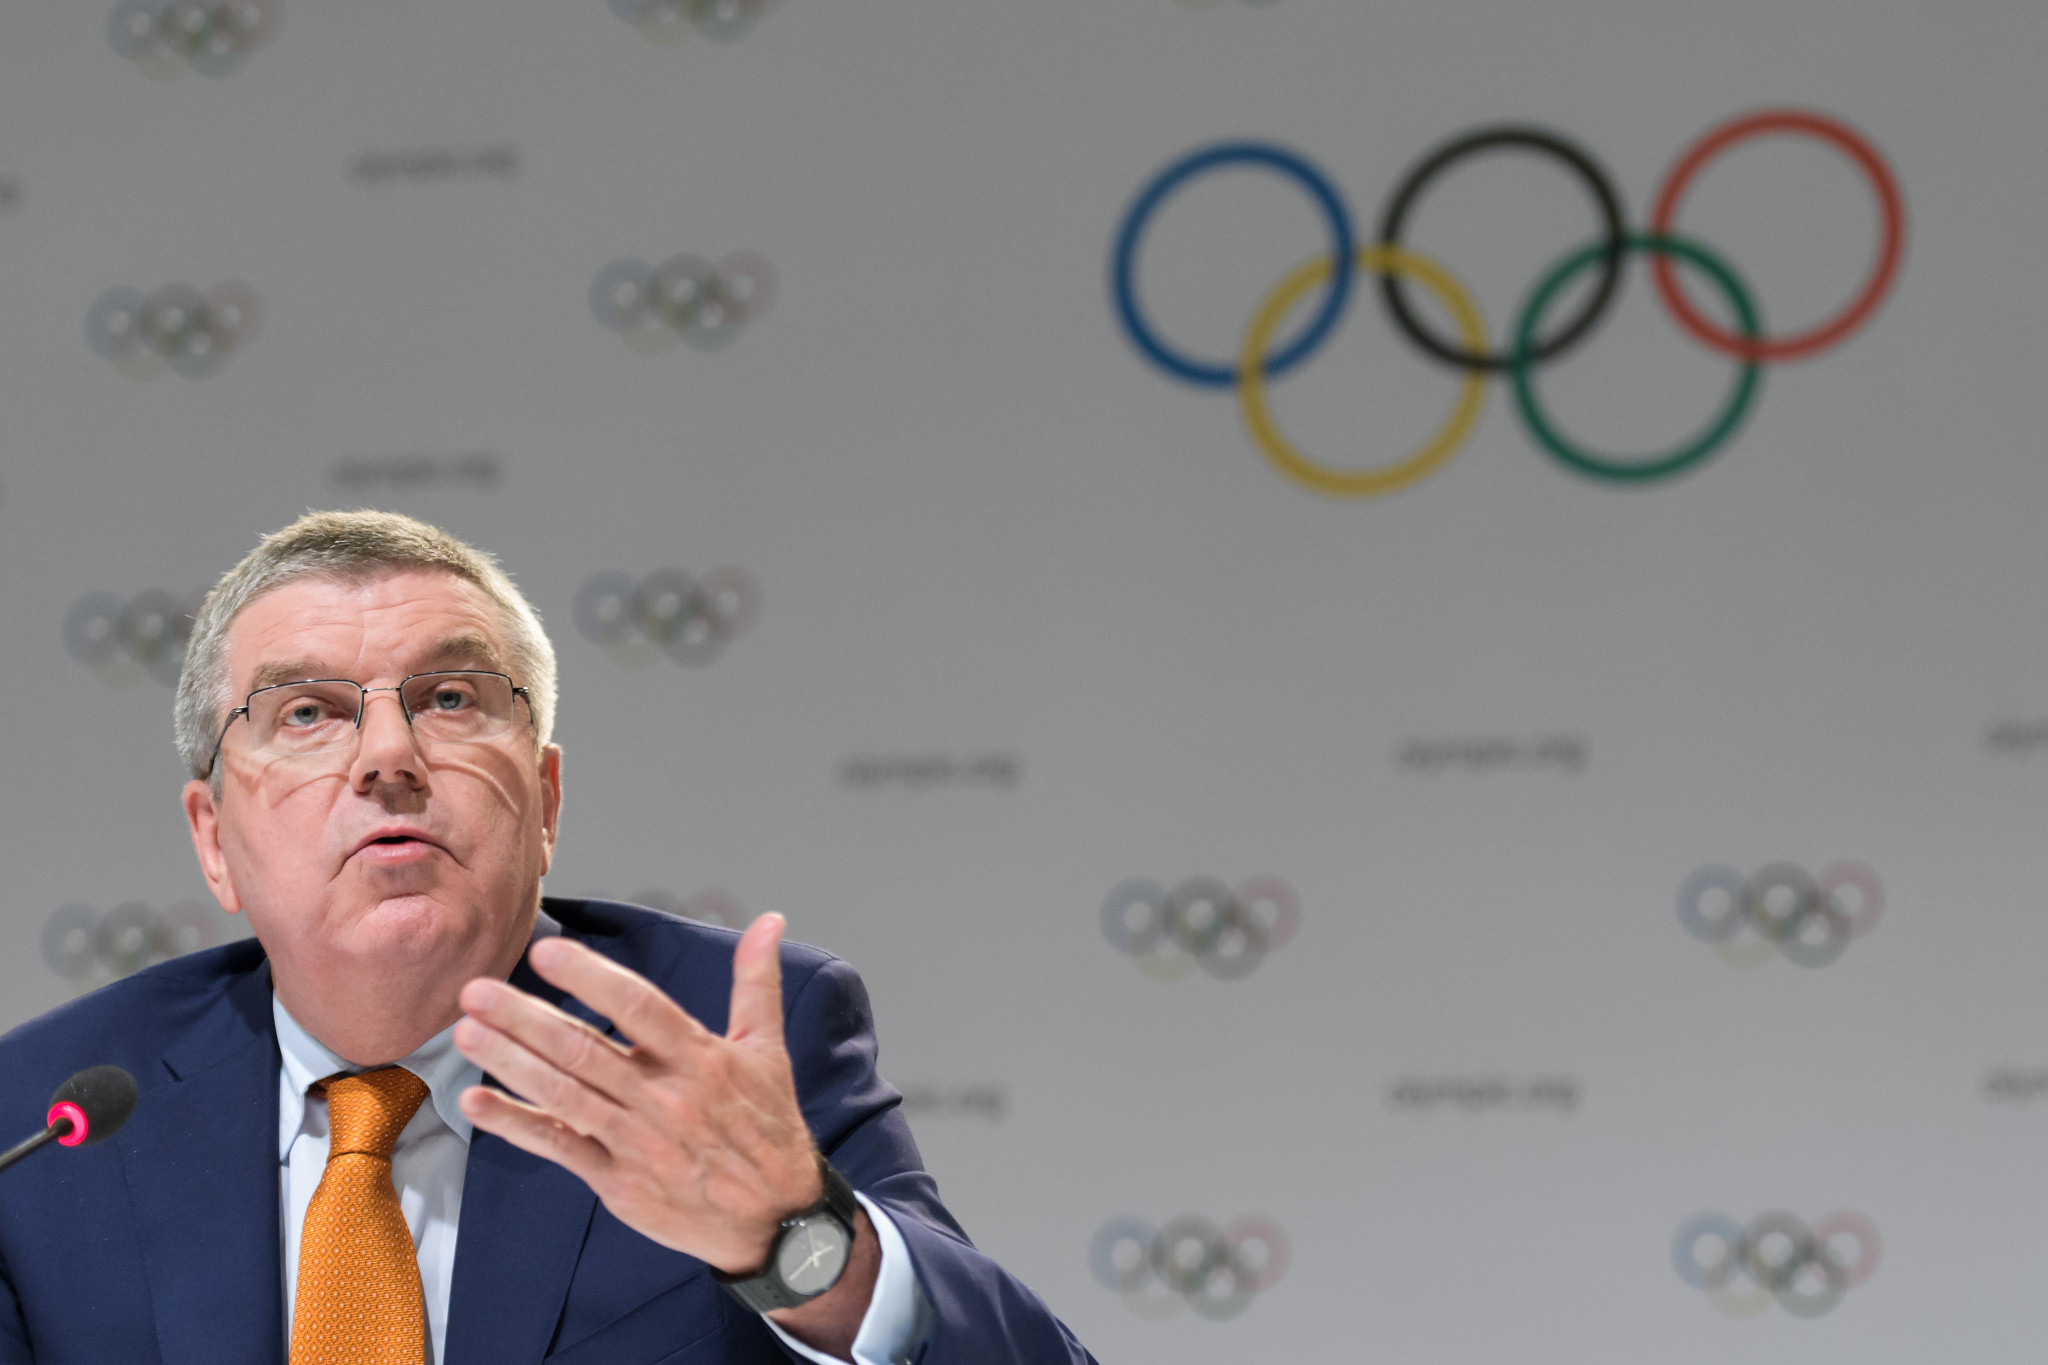 Thomas Bach insisted Pyeongchang 2018 will not be affected by the North Korea crisis ©Getty Images